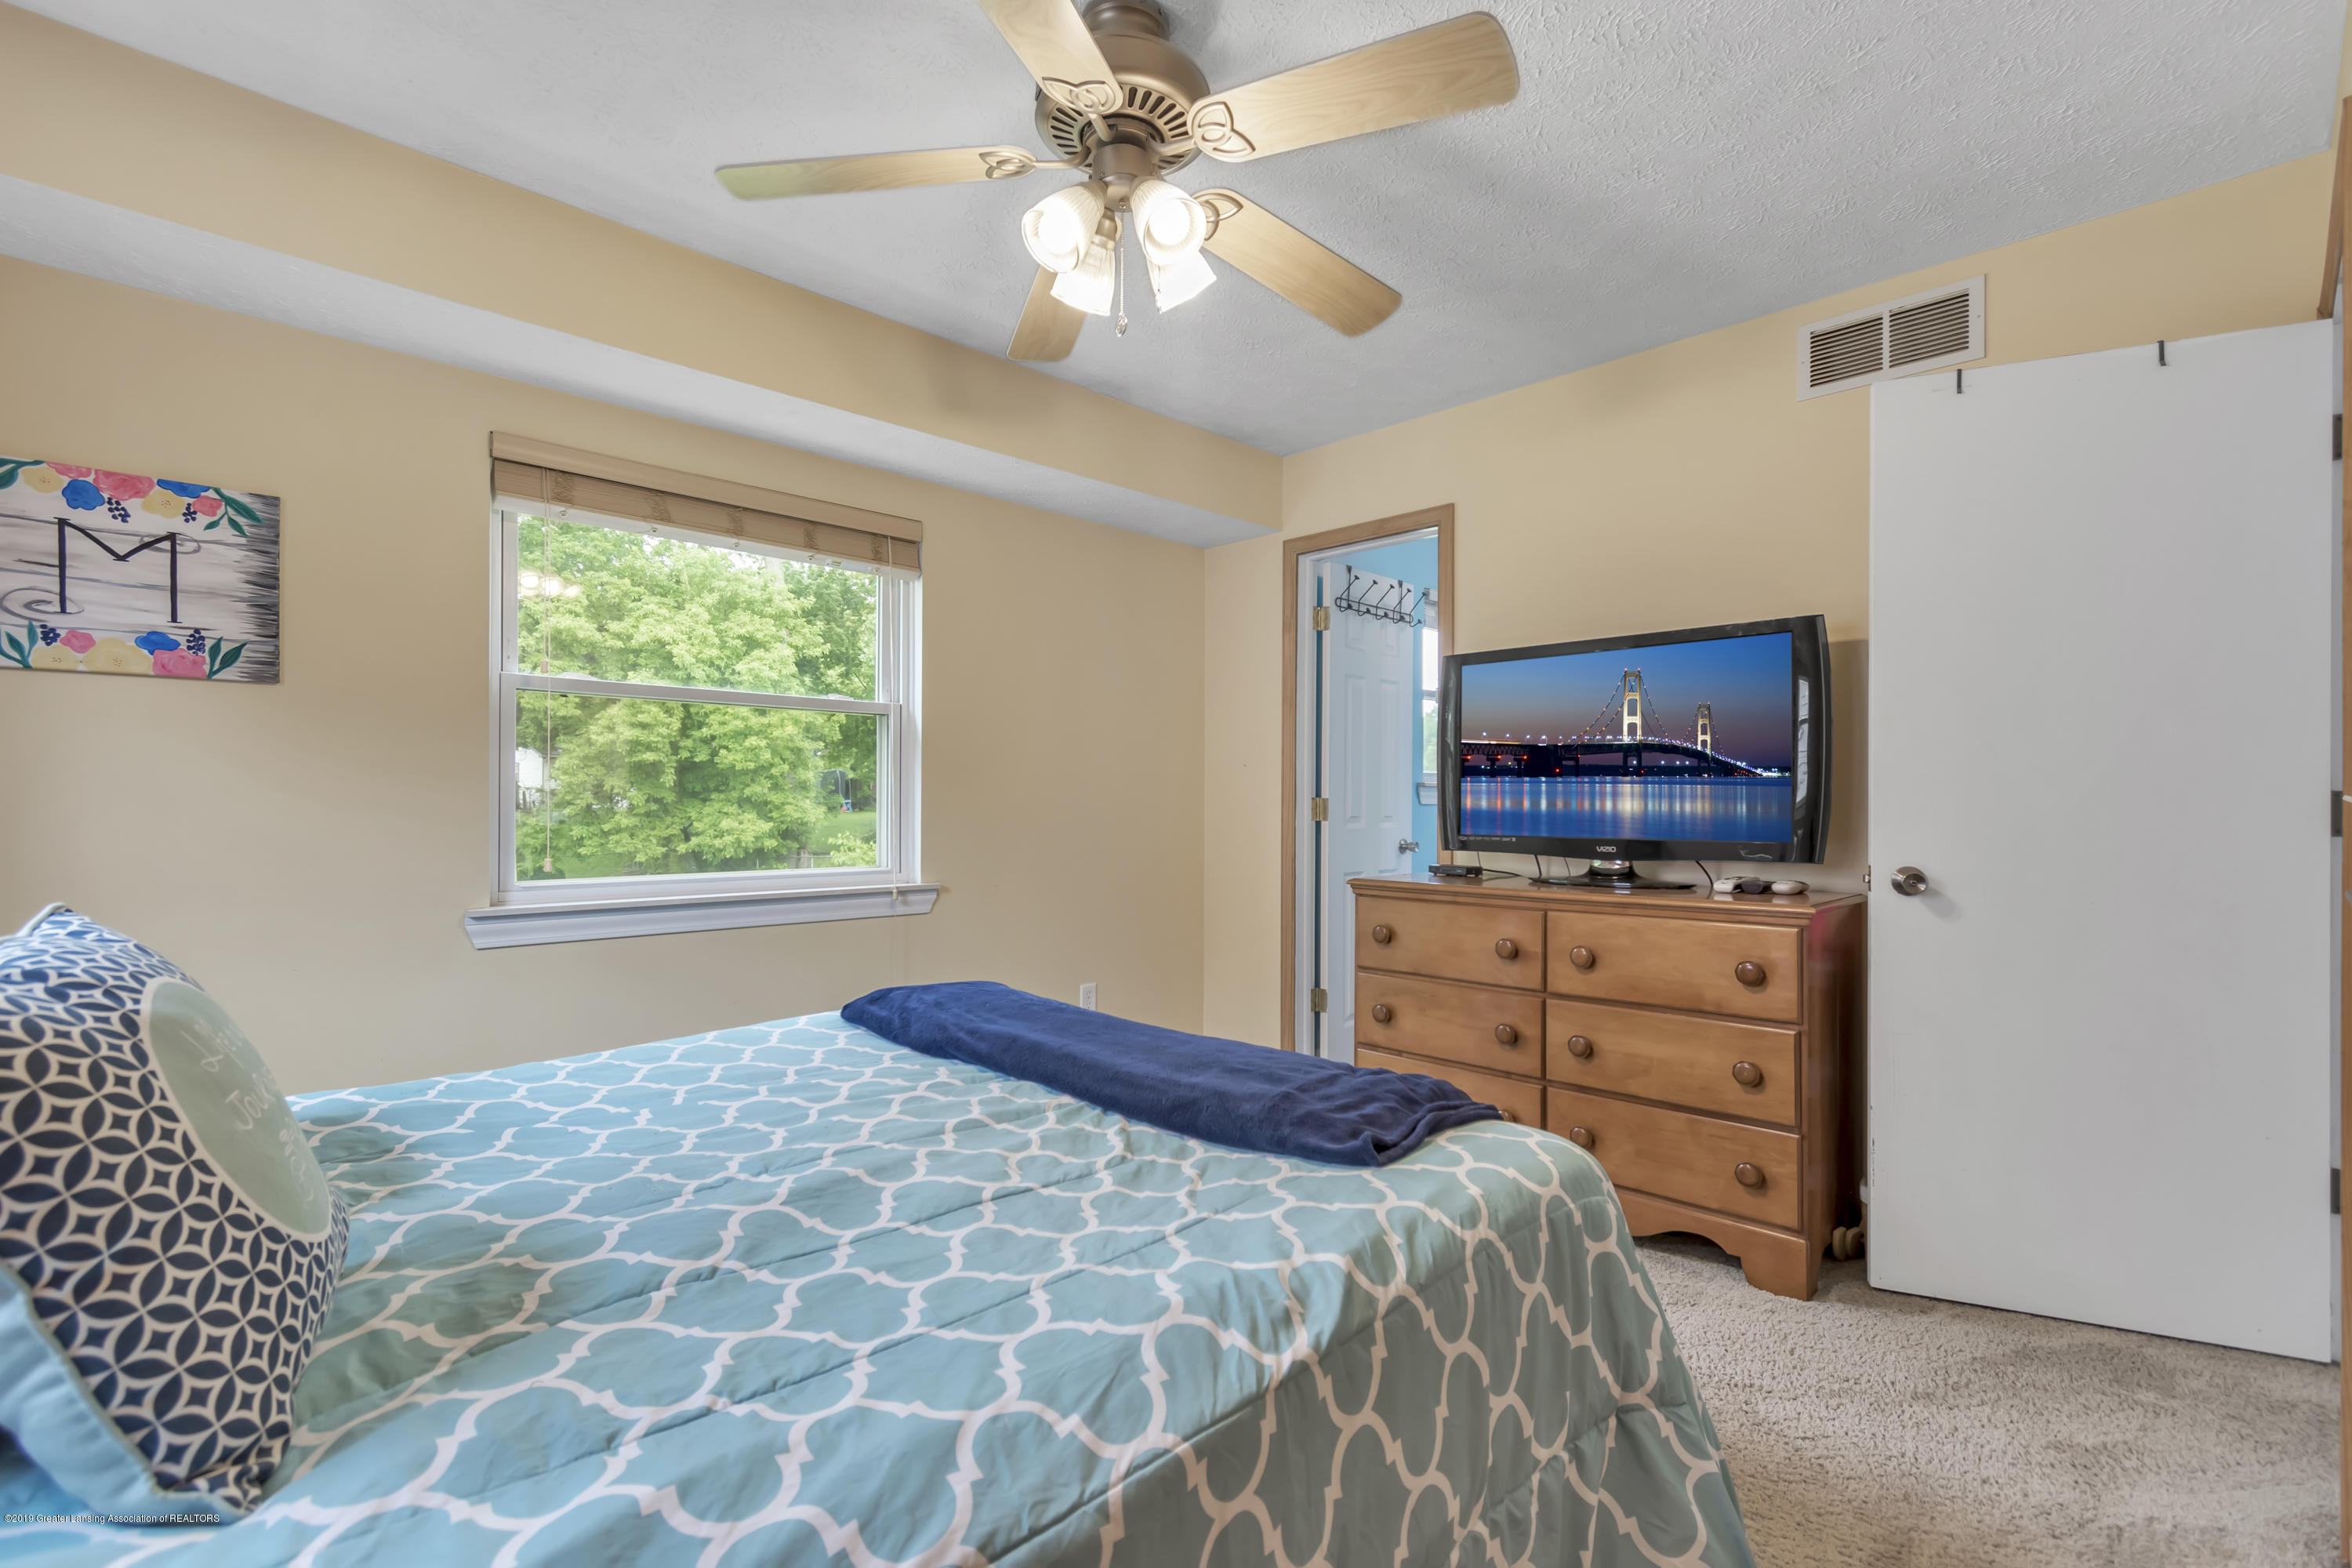 5736 Coulson Ct - 5736-Coulson-Ct-Lansing-MI-windowstill-2 - 21